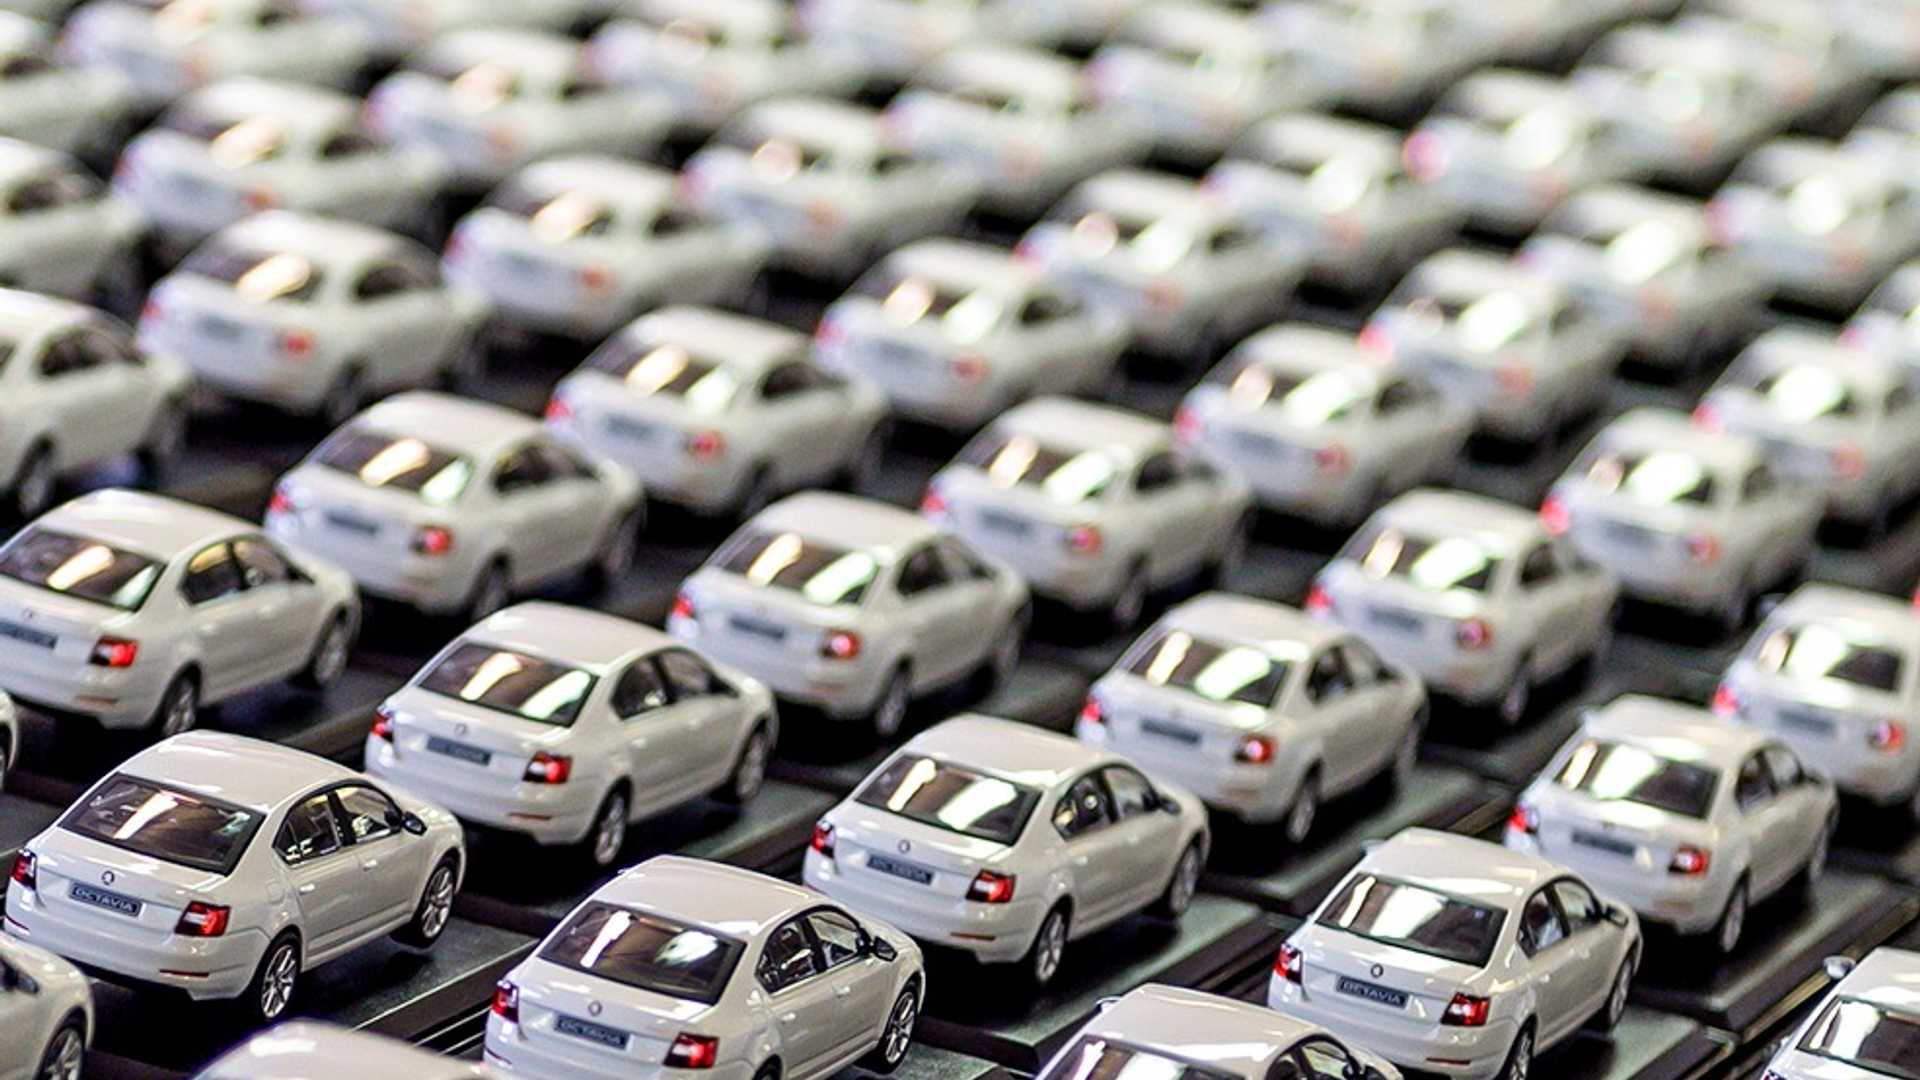 This is how car manufacturers produce scale models